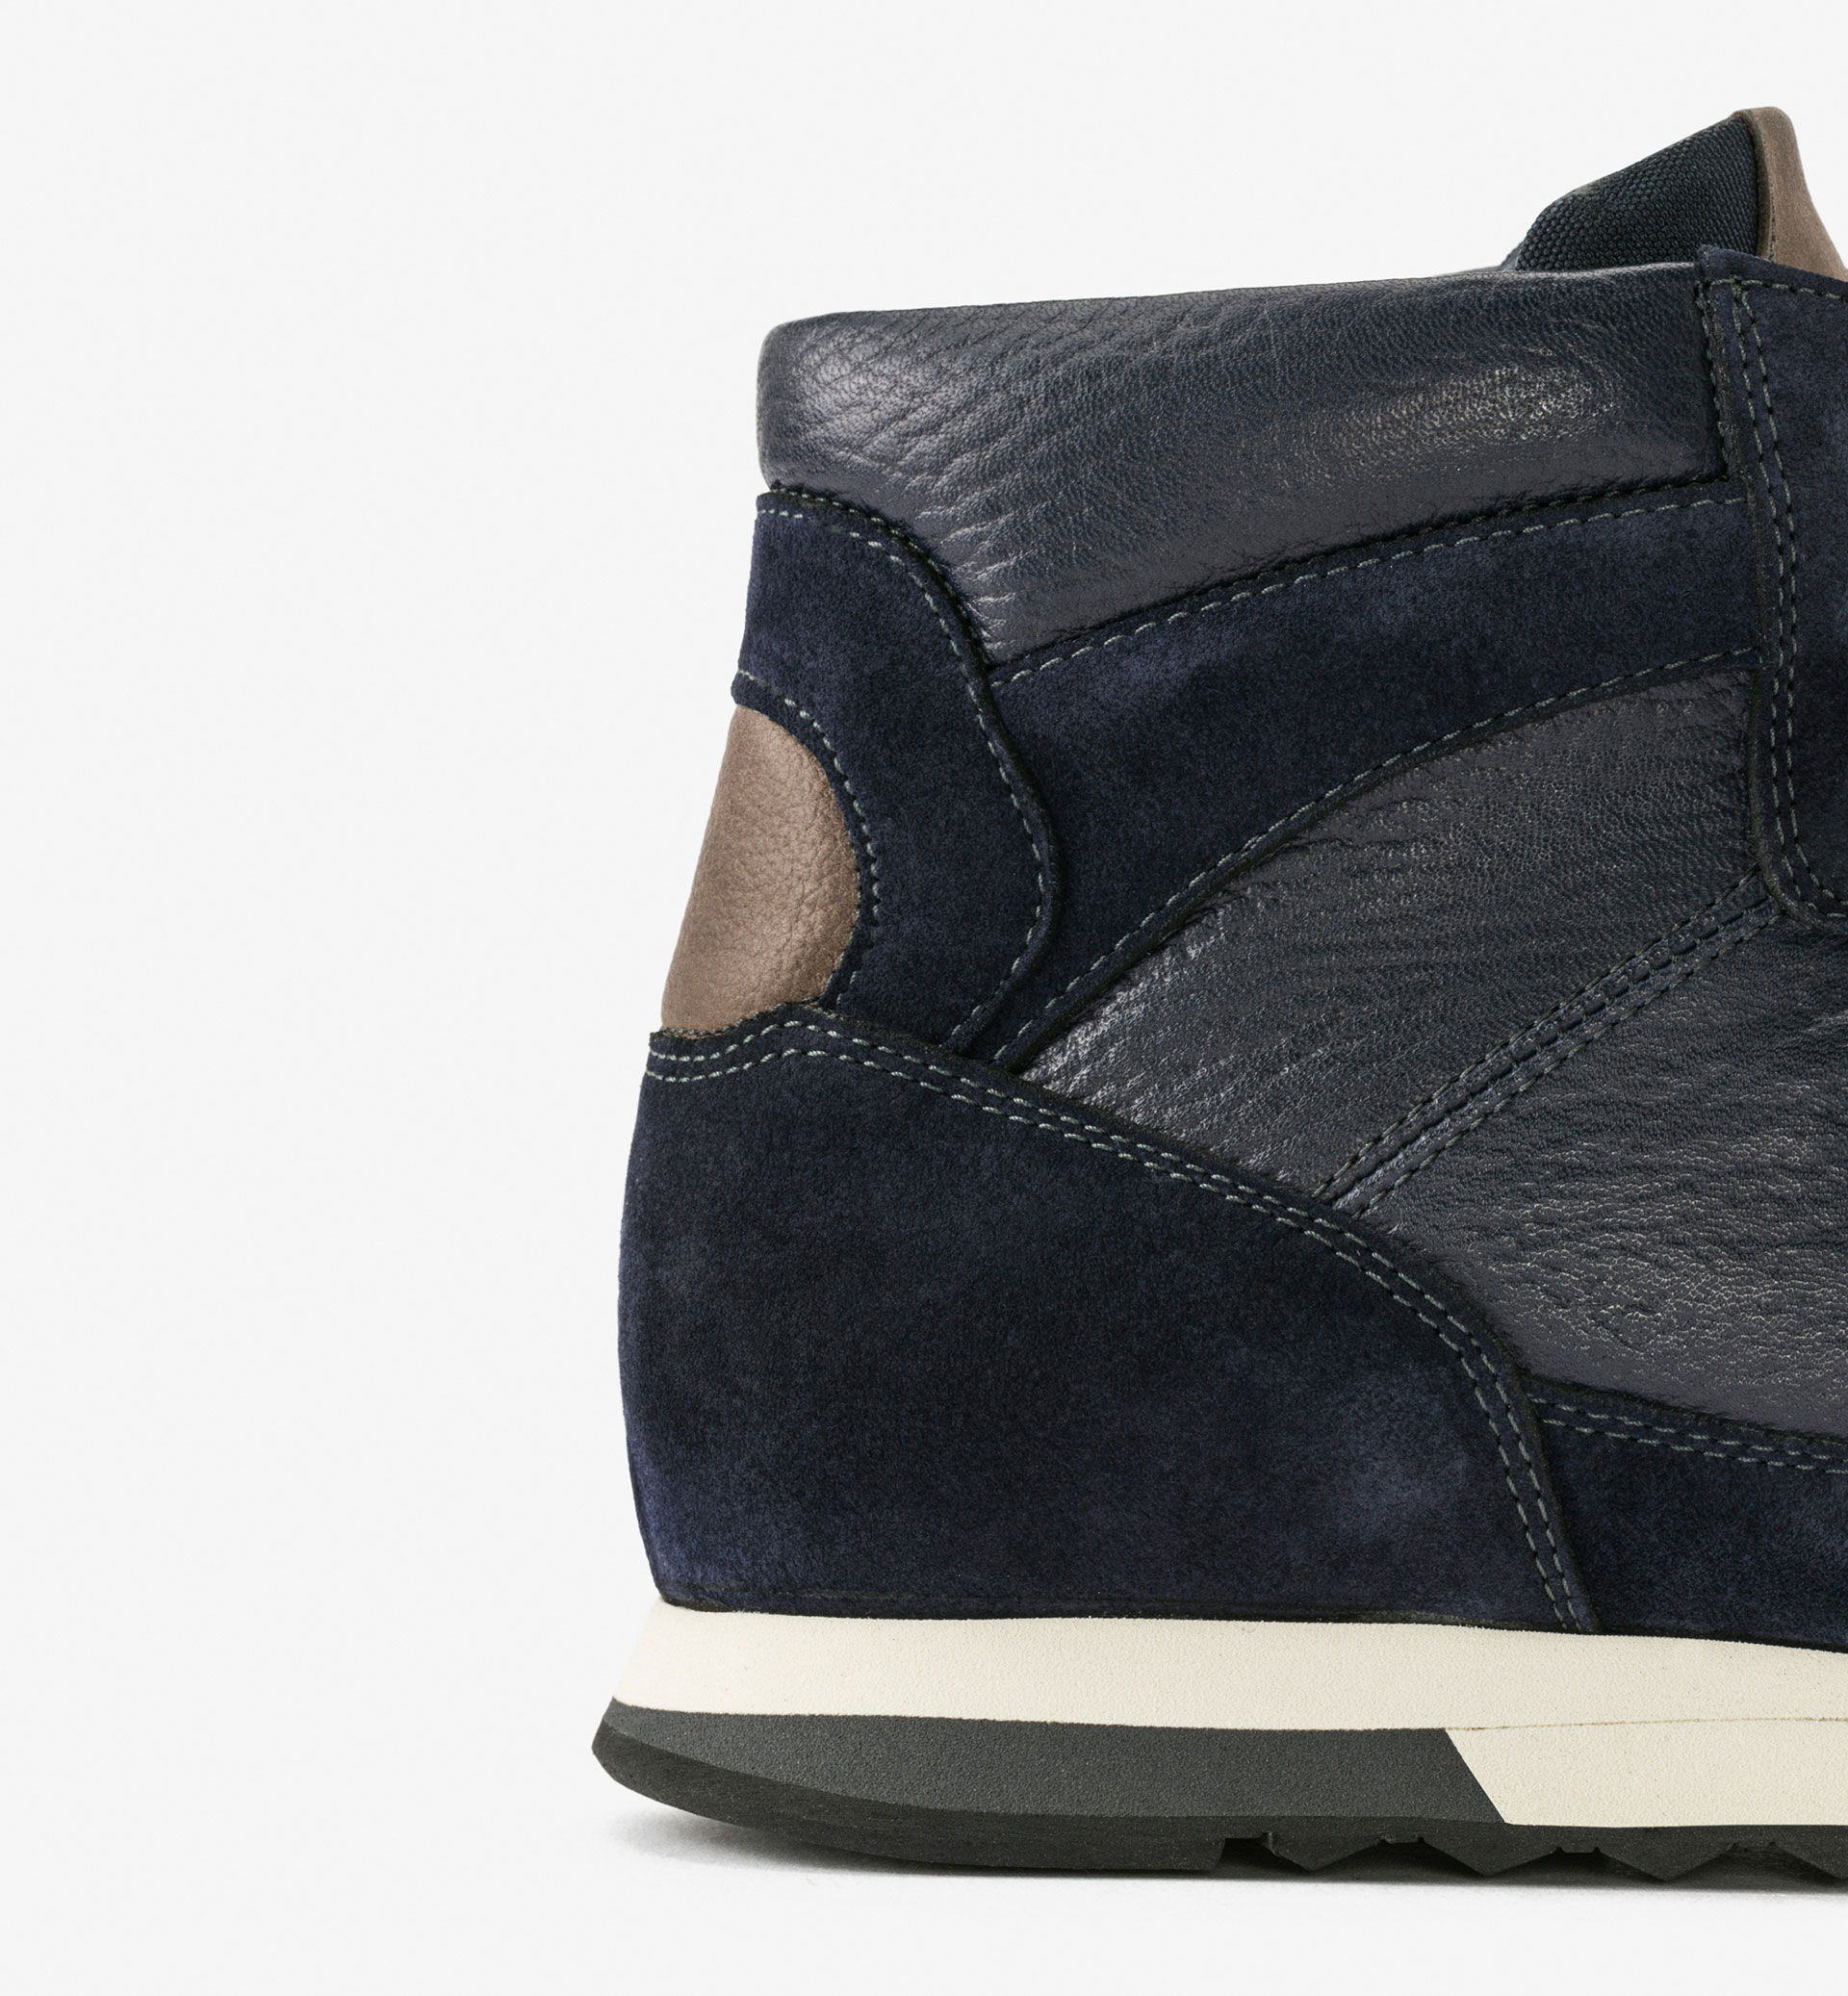 LIMITED EDITION HIGH-TOP SNEAKERS